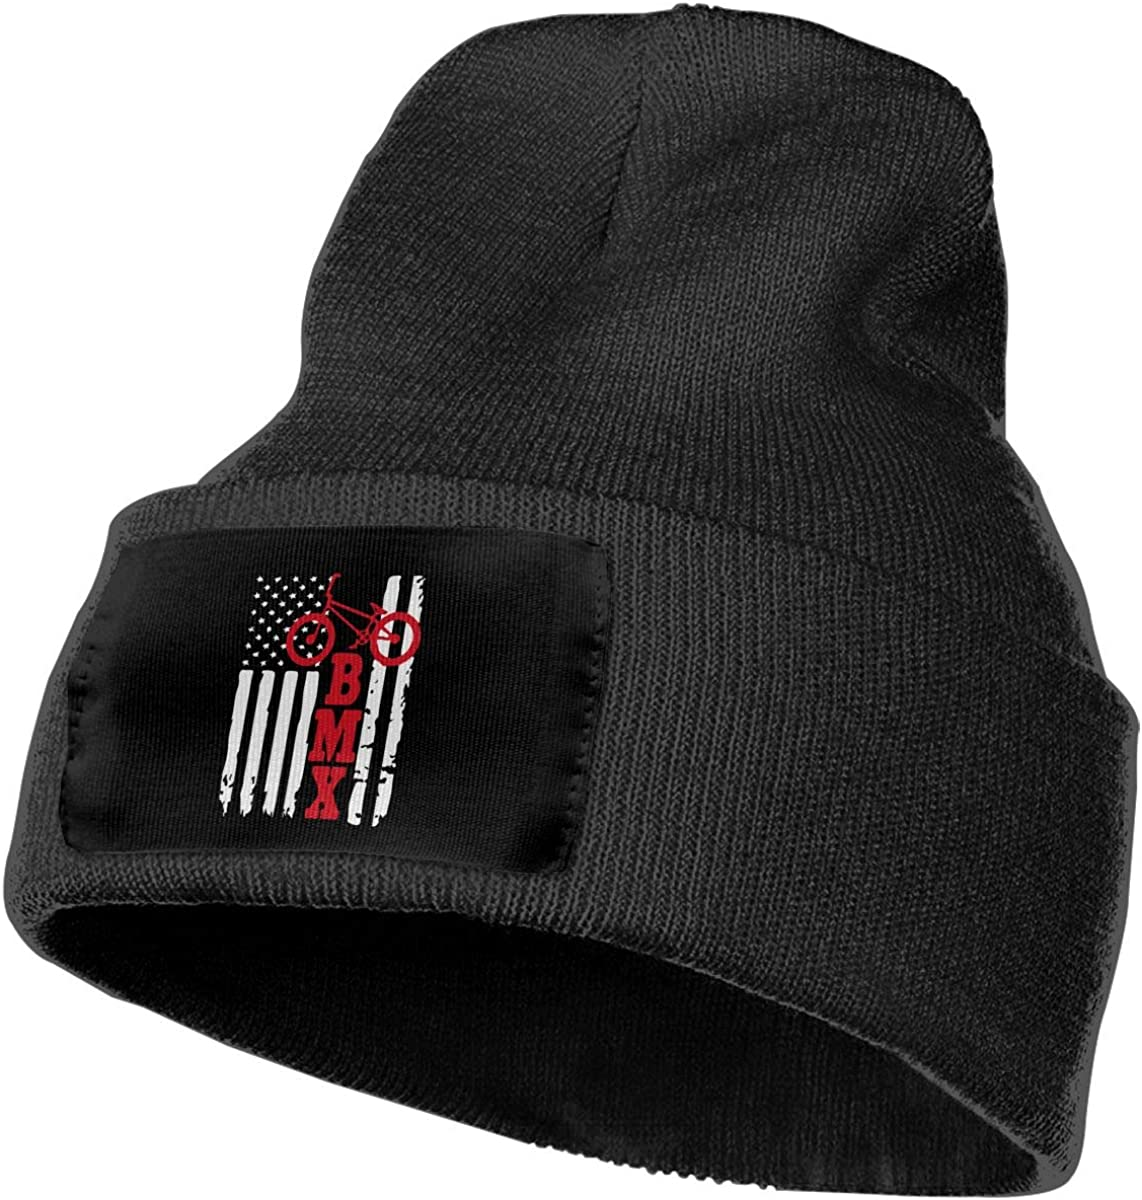 COLLJL-8 Men//Women BMX USA American Flag Outdoor Warm Knit Beanies Hat Soft Winter Skull Caps